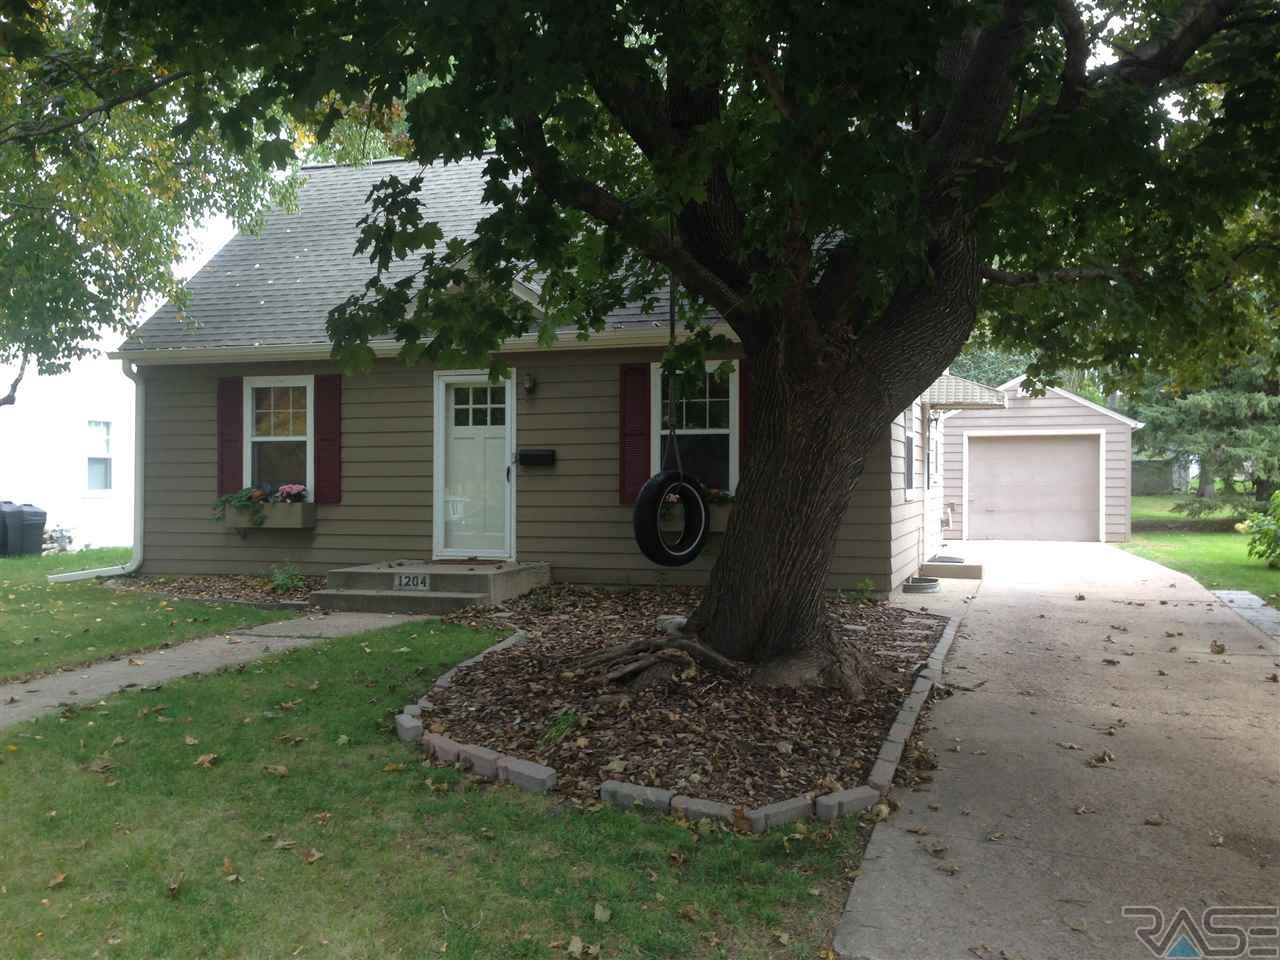 1204 S Willow Ave, SIOUX FALLS